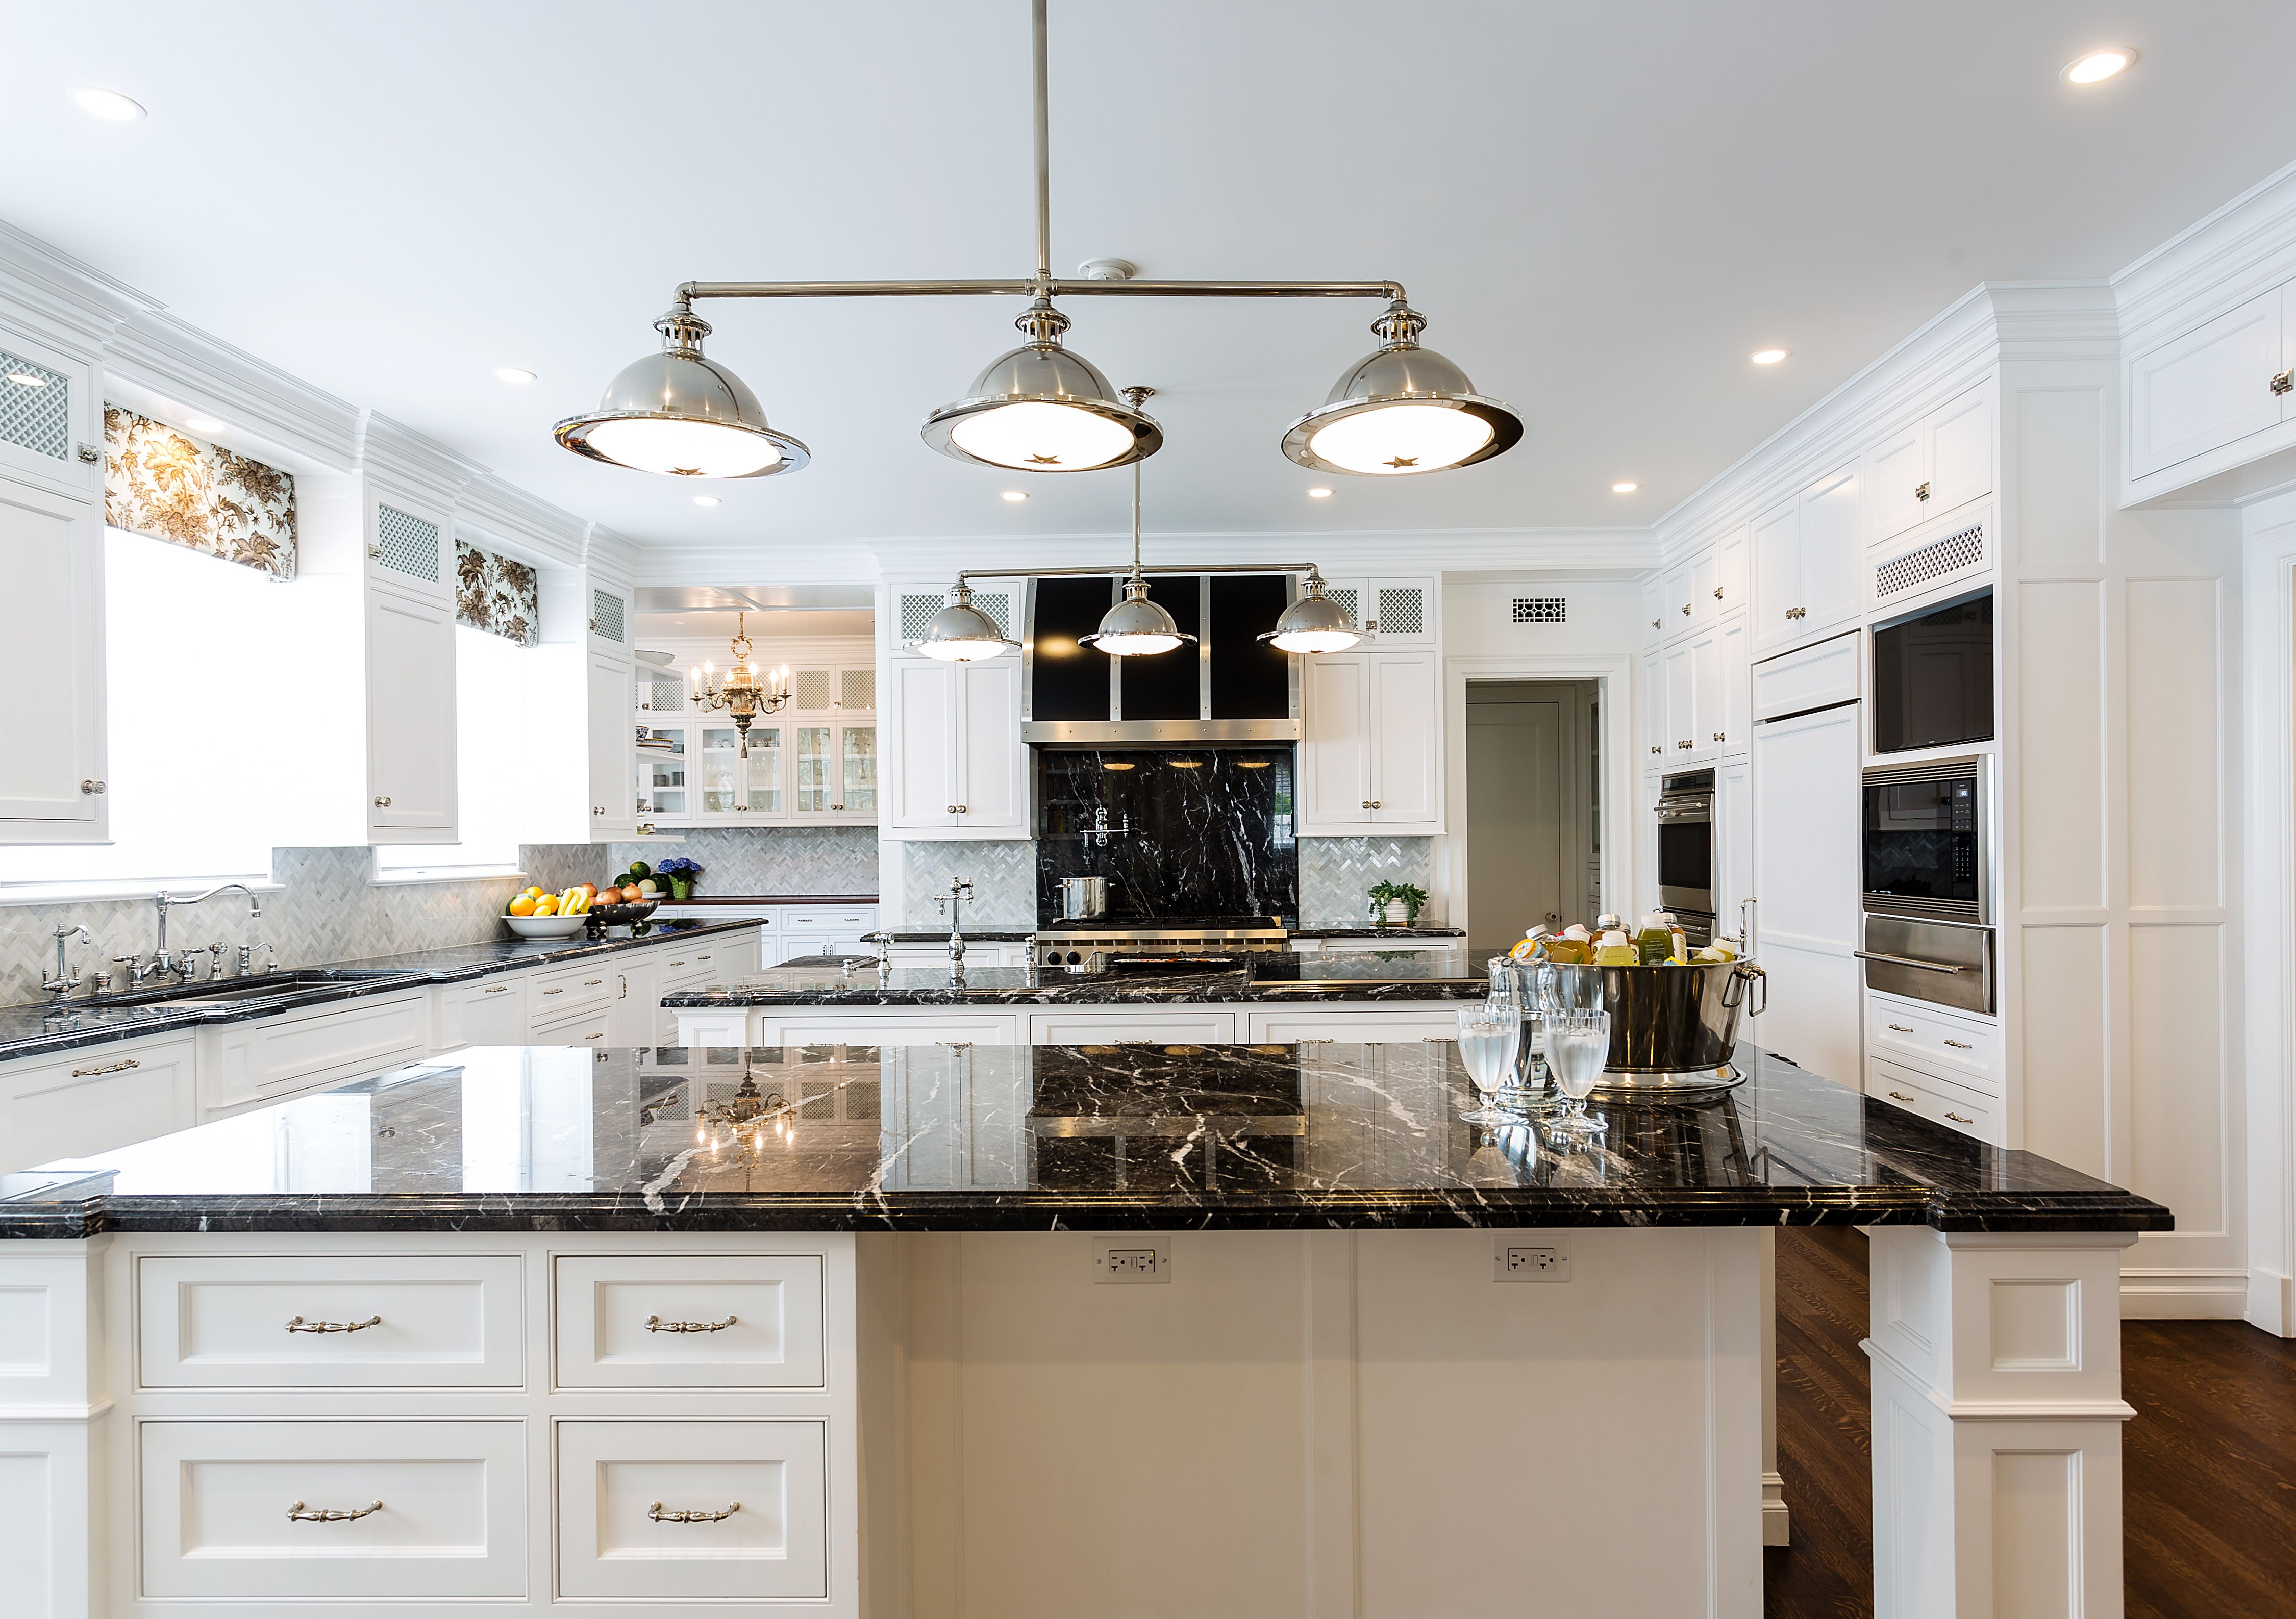 Mission West Kitchen And Bath S Custom Home Installation Kitchen Kitchengoals Kitcheni Kitchen And Bath Showroom Kitchen And Bath Design Kitchen And Bath